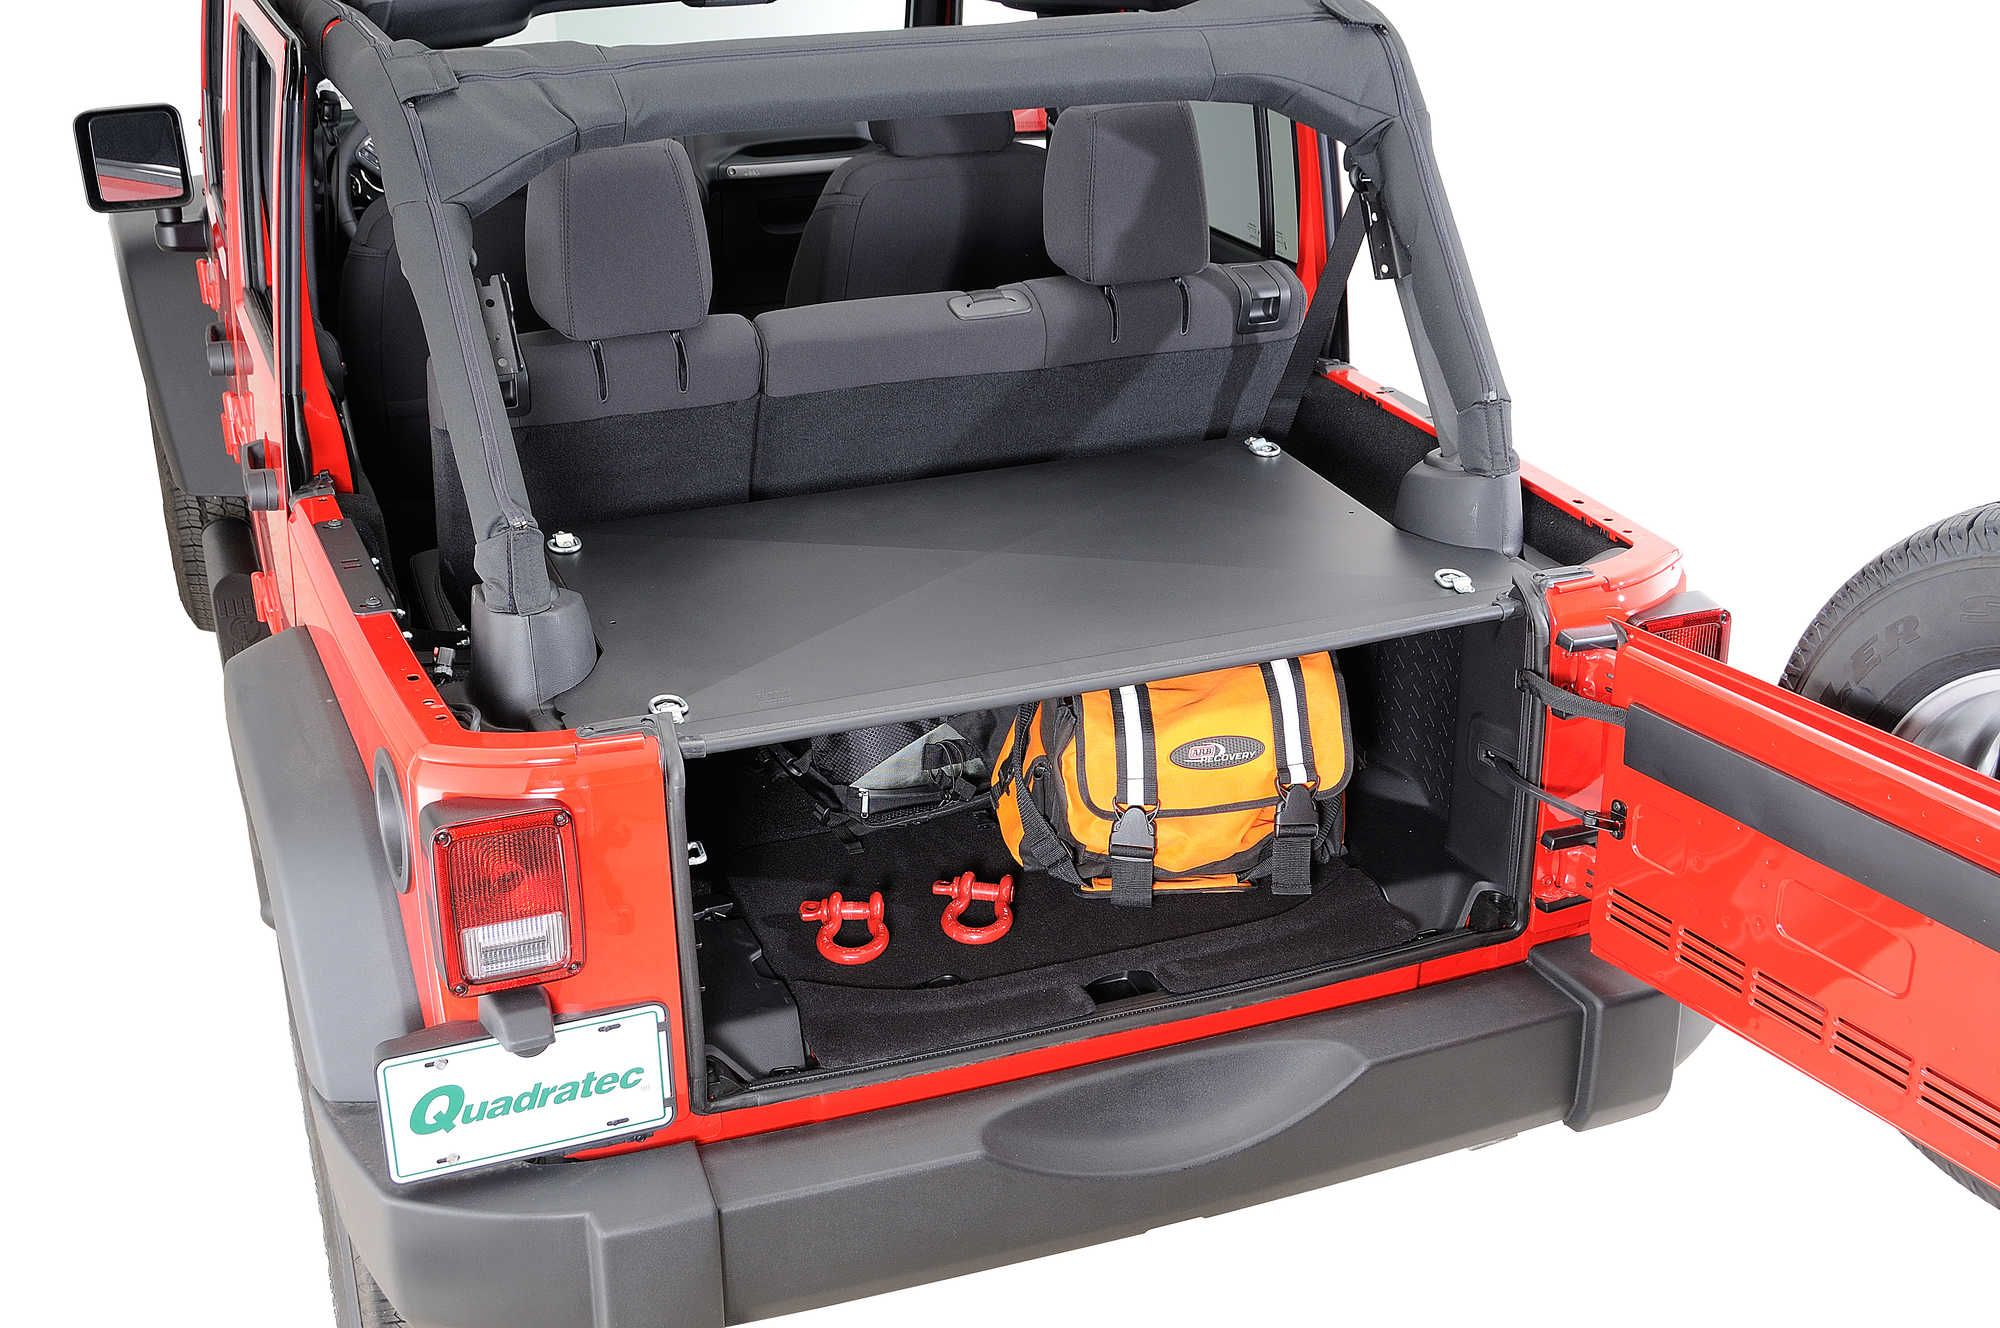 This new tailgate security enclosure works in the 4-door JK model with the rear seat. It operates in conjunction with the vehicle's tailgate to create a lockable trunk with over 22,000 cubic inches of storage.